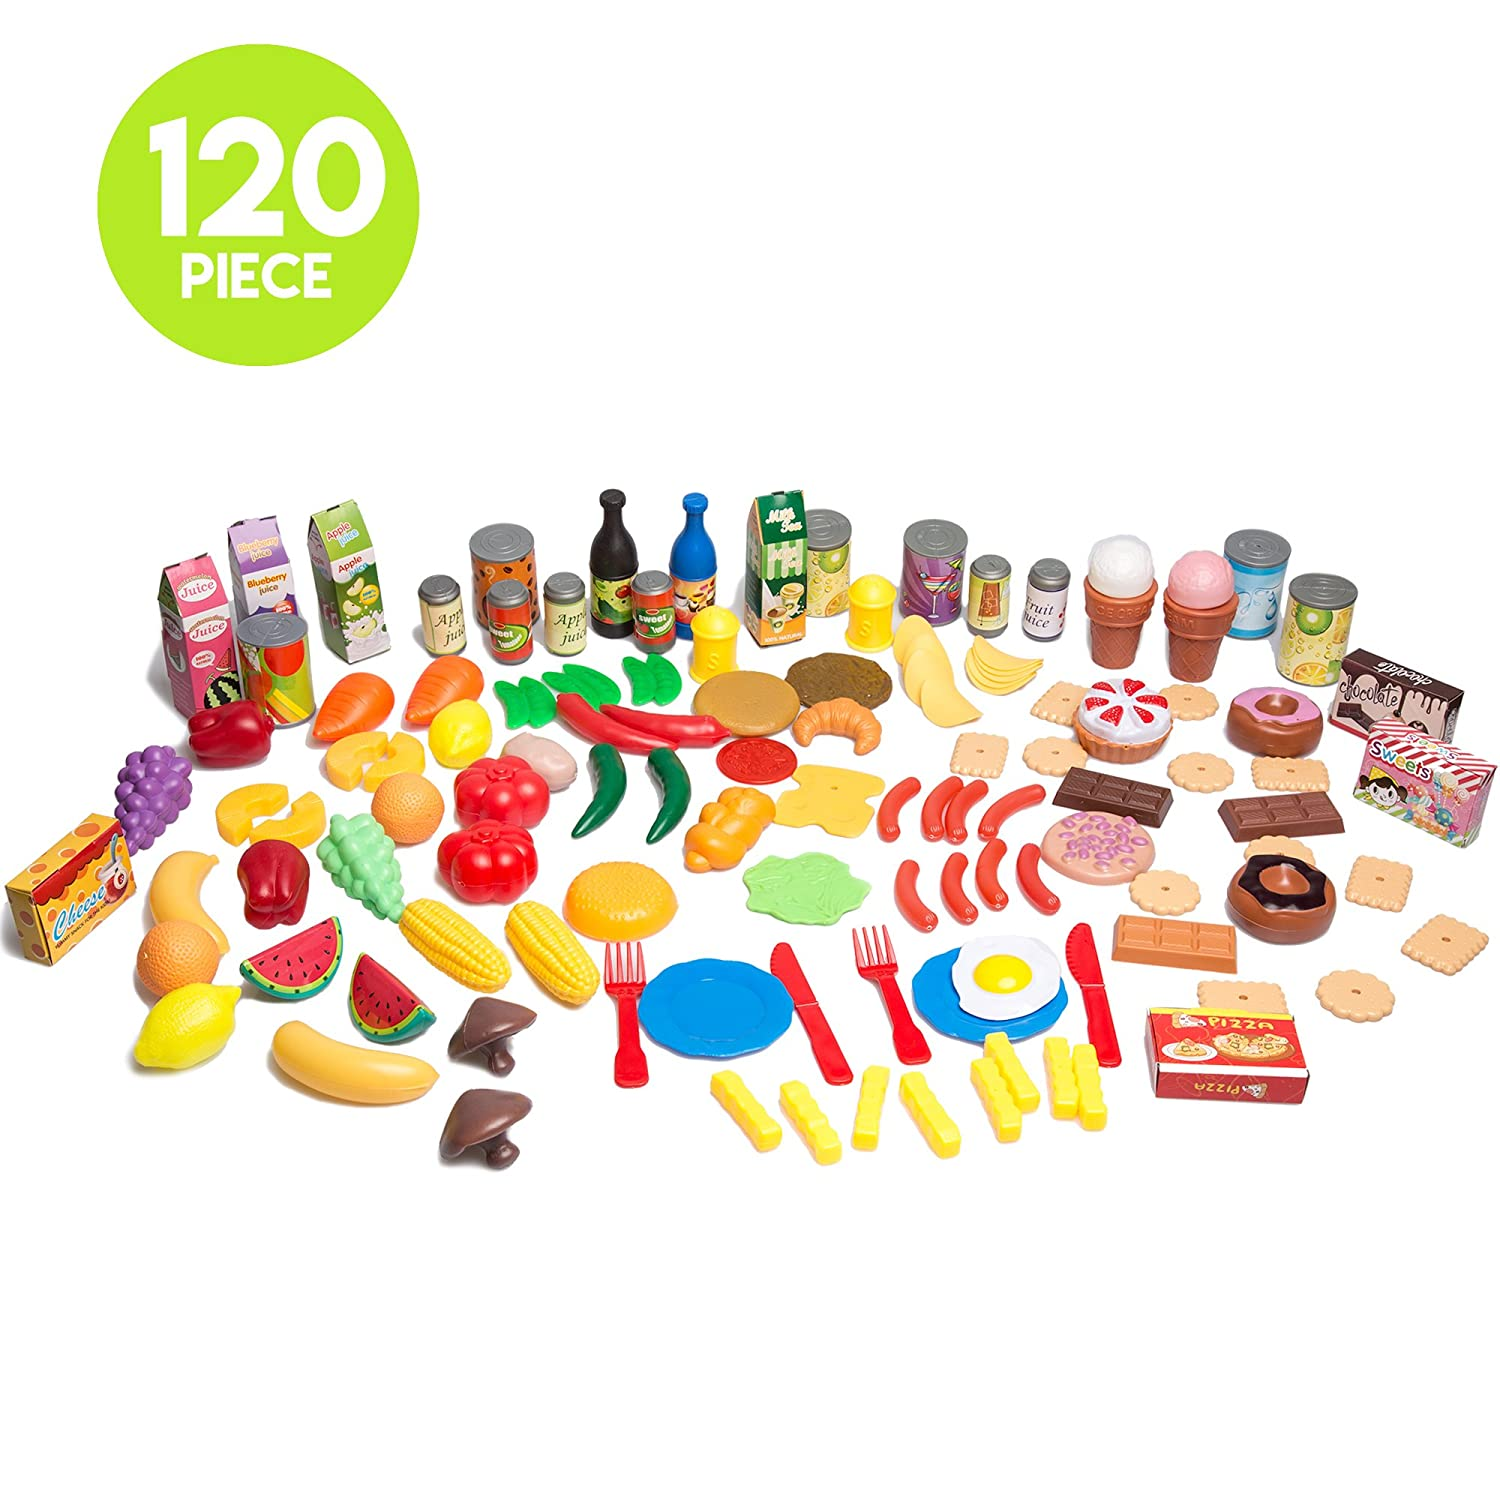 Amazon 120 Piece Pretend Food Playset Plastic Play Food